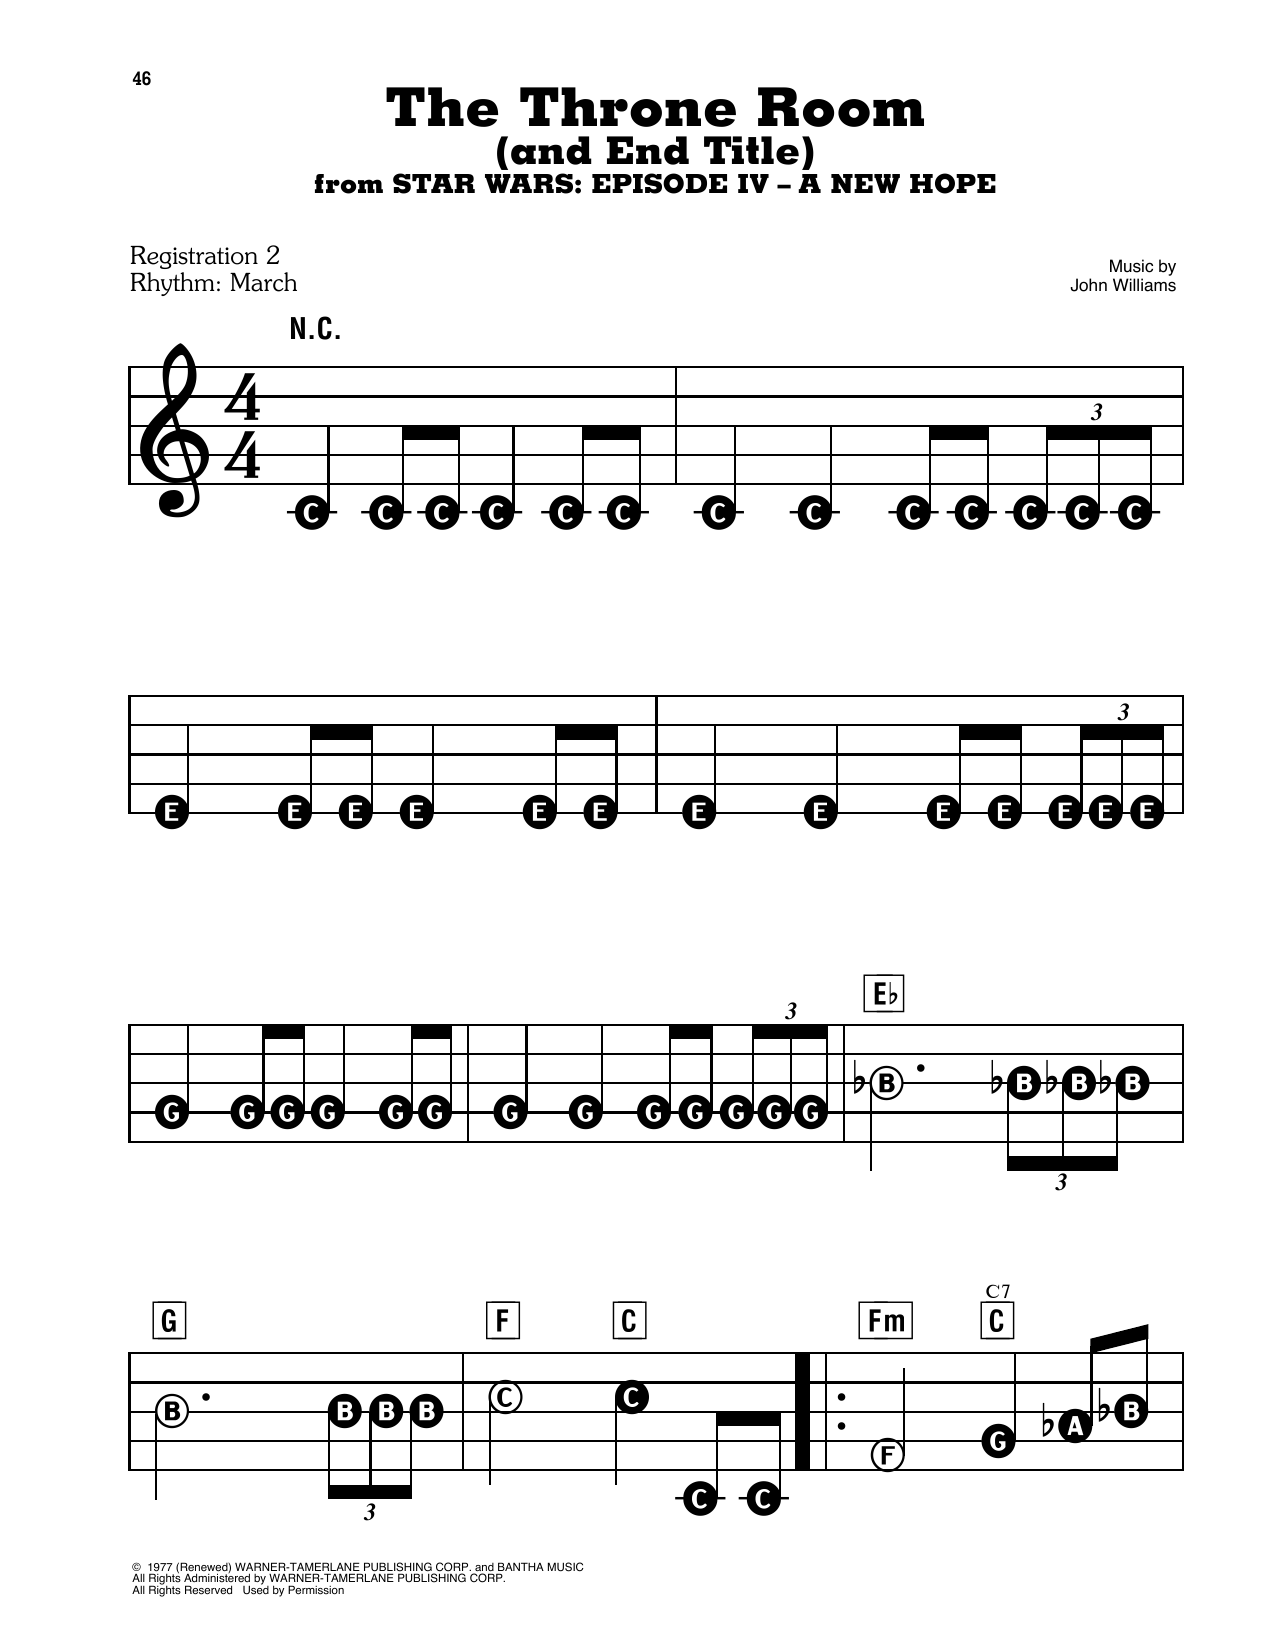 Throne Room and Finale (from Star Wars: A New Hope) Sheet Music